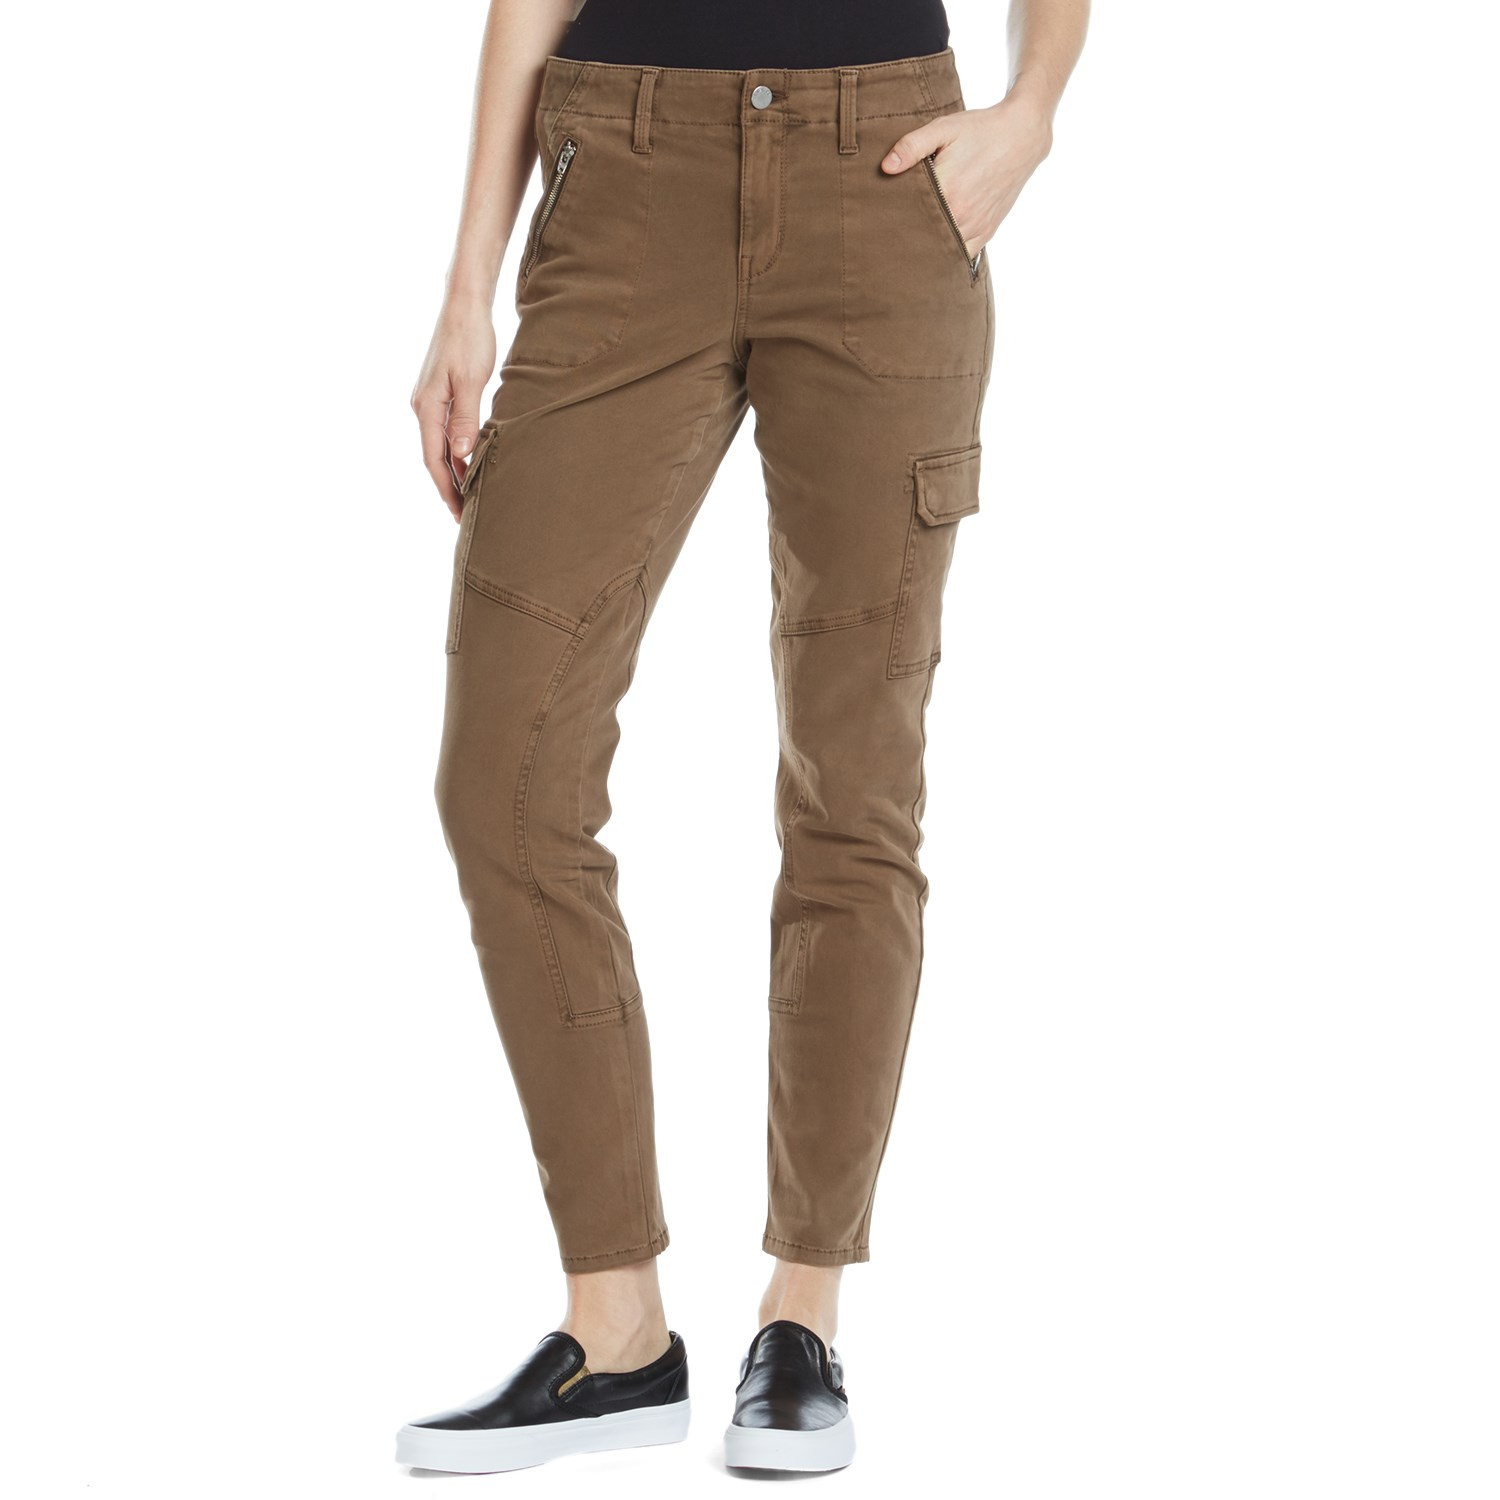 Find great deals on eBay for cargo pants skinny womens. Shop with confidence.